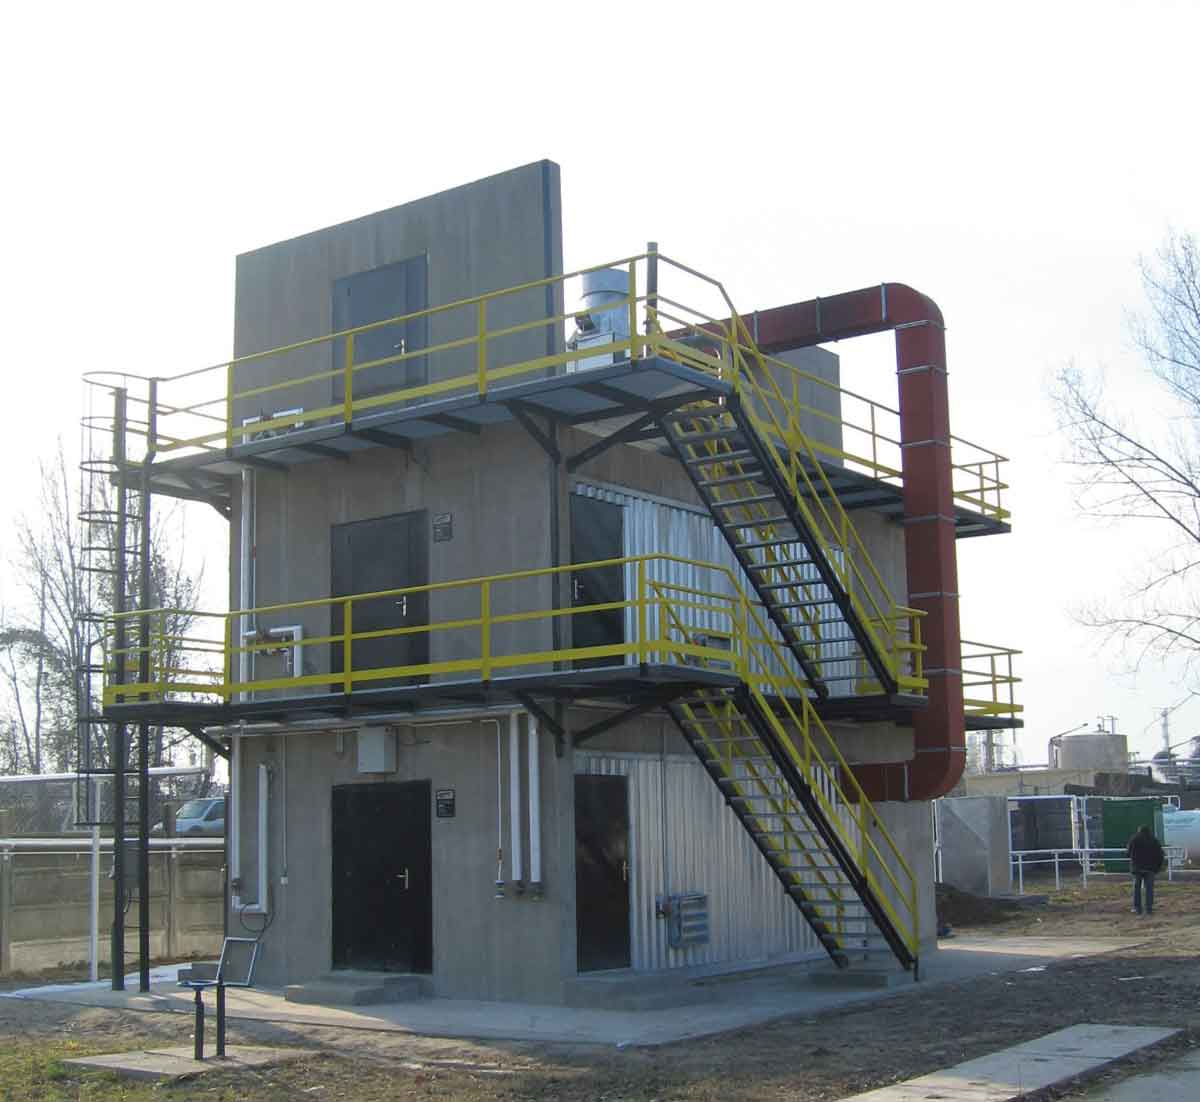 Fire-House---Brandhaus-Mol-Hungarian-Oil-and-Gas-Plc